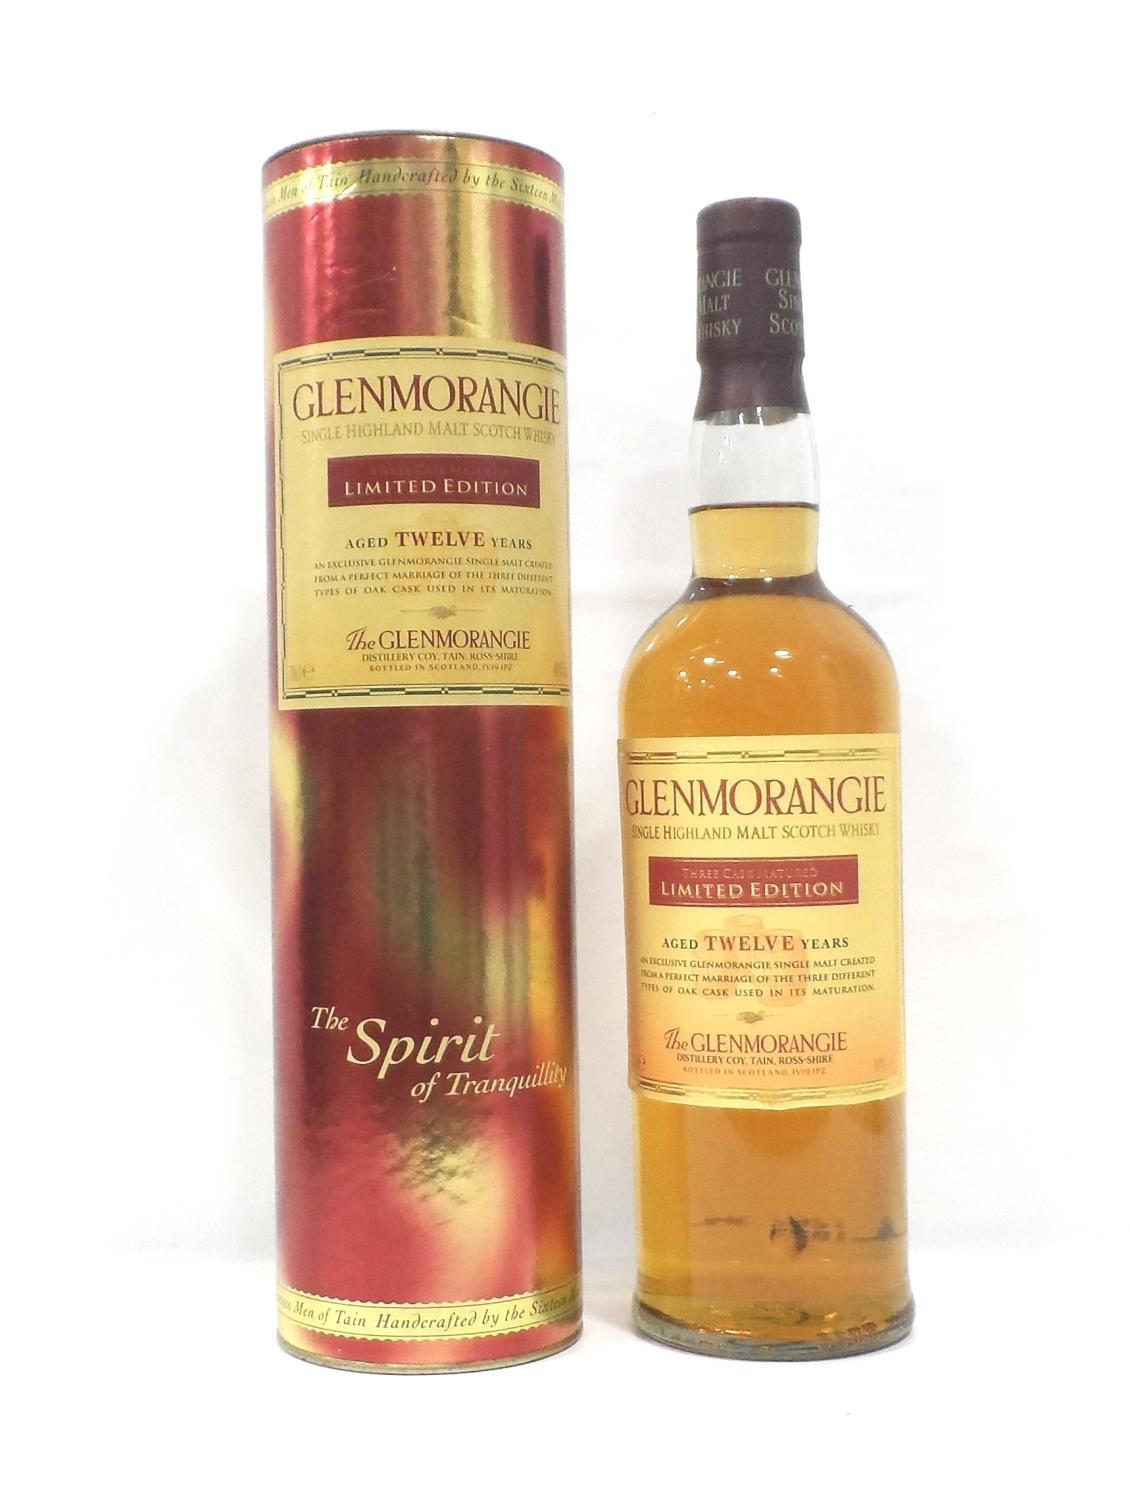 GLENMORANGIE 12YO THREE CASK MATURED A Limited Edition bottling of the Glenmorangie 12 Year Old